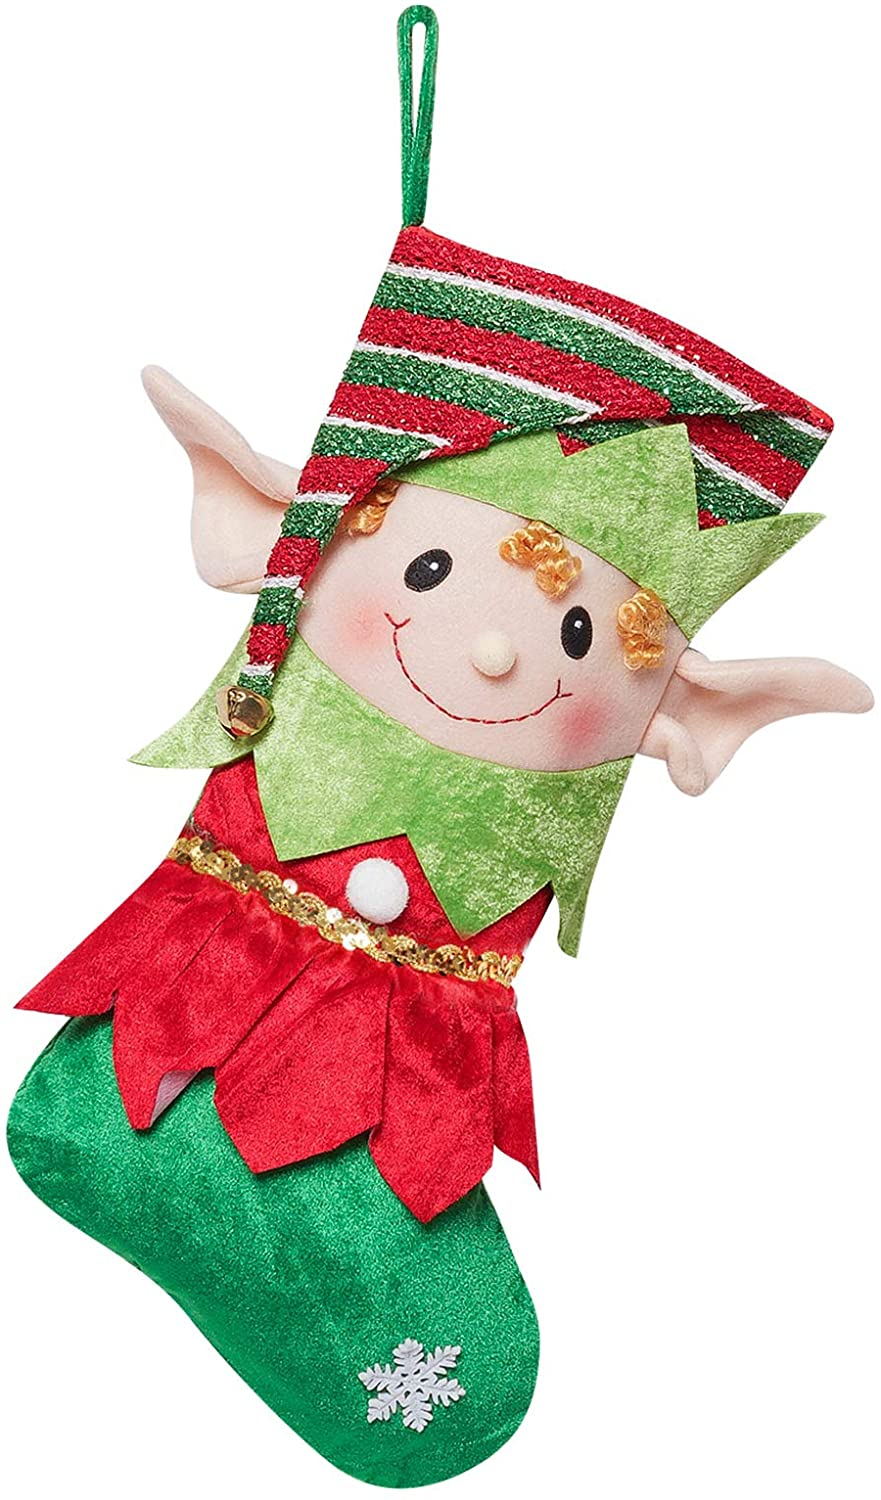 ALLYORS Christmas Elf Stockings with Delightful Pointy Ears and Tunic Red Green Dress, Baby Elves Hanging Ornaments for Xmas Themed Home Decoration, Festive Gifts Bags on Shelf and Party Supplies